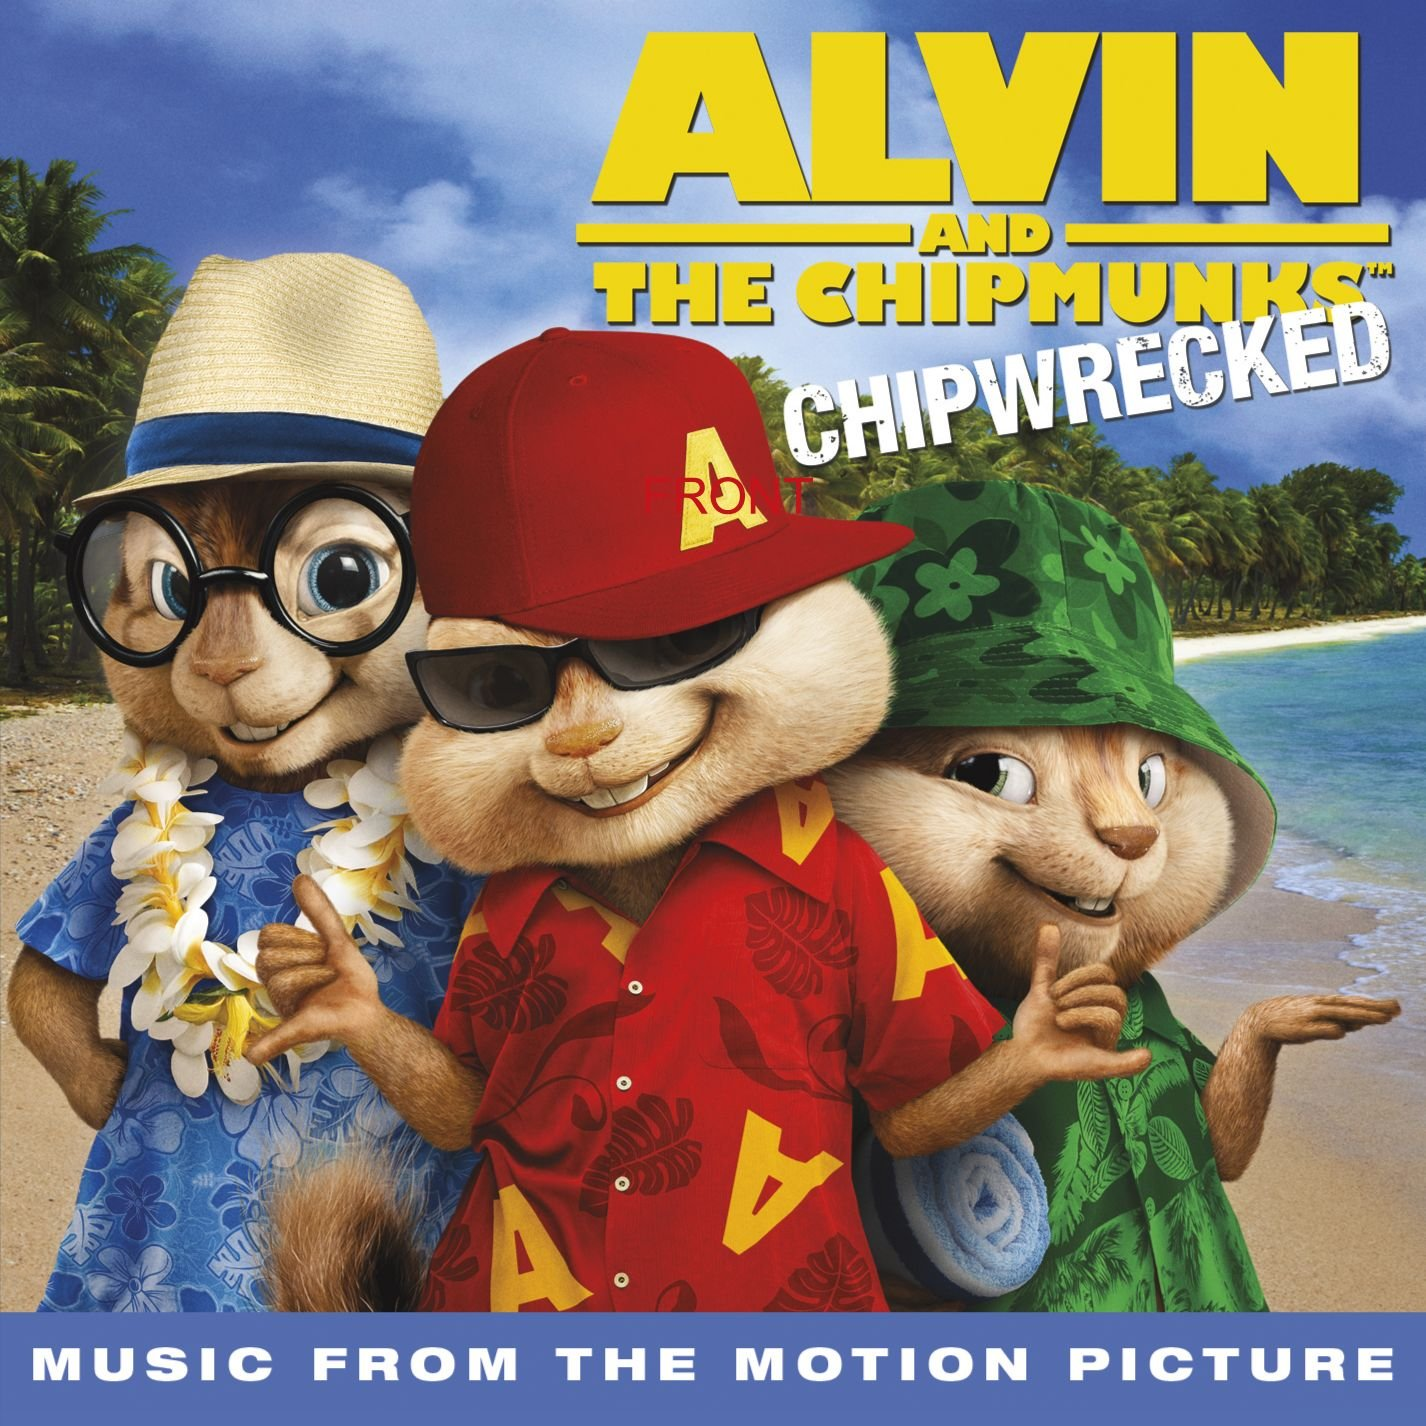 alvin and the chipmunks 2011 movie free download